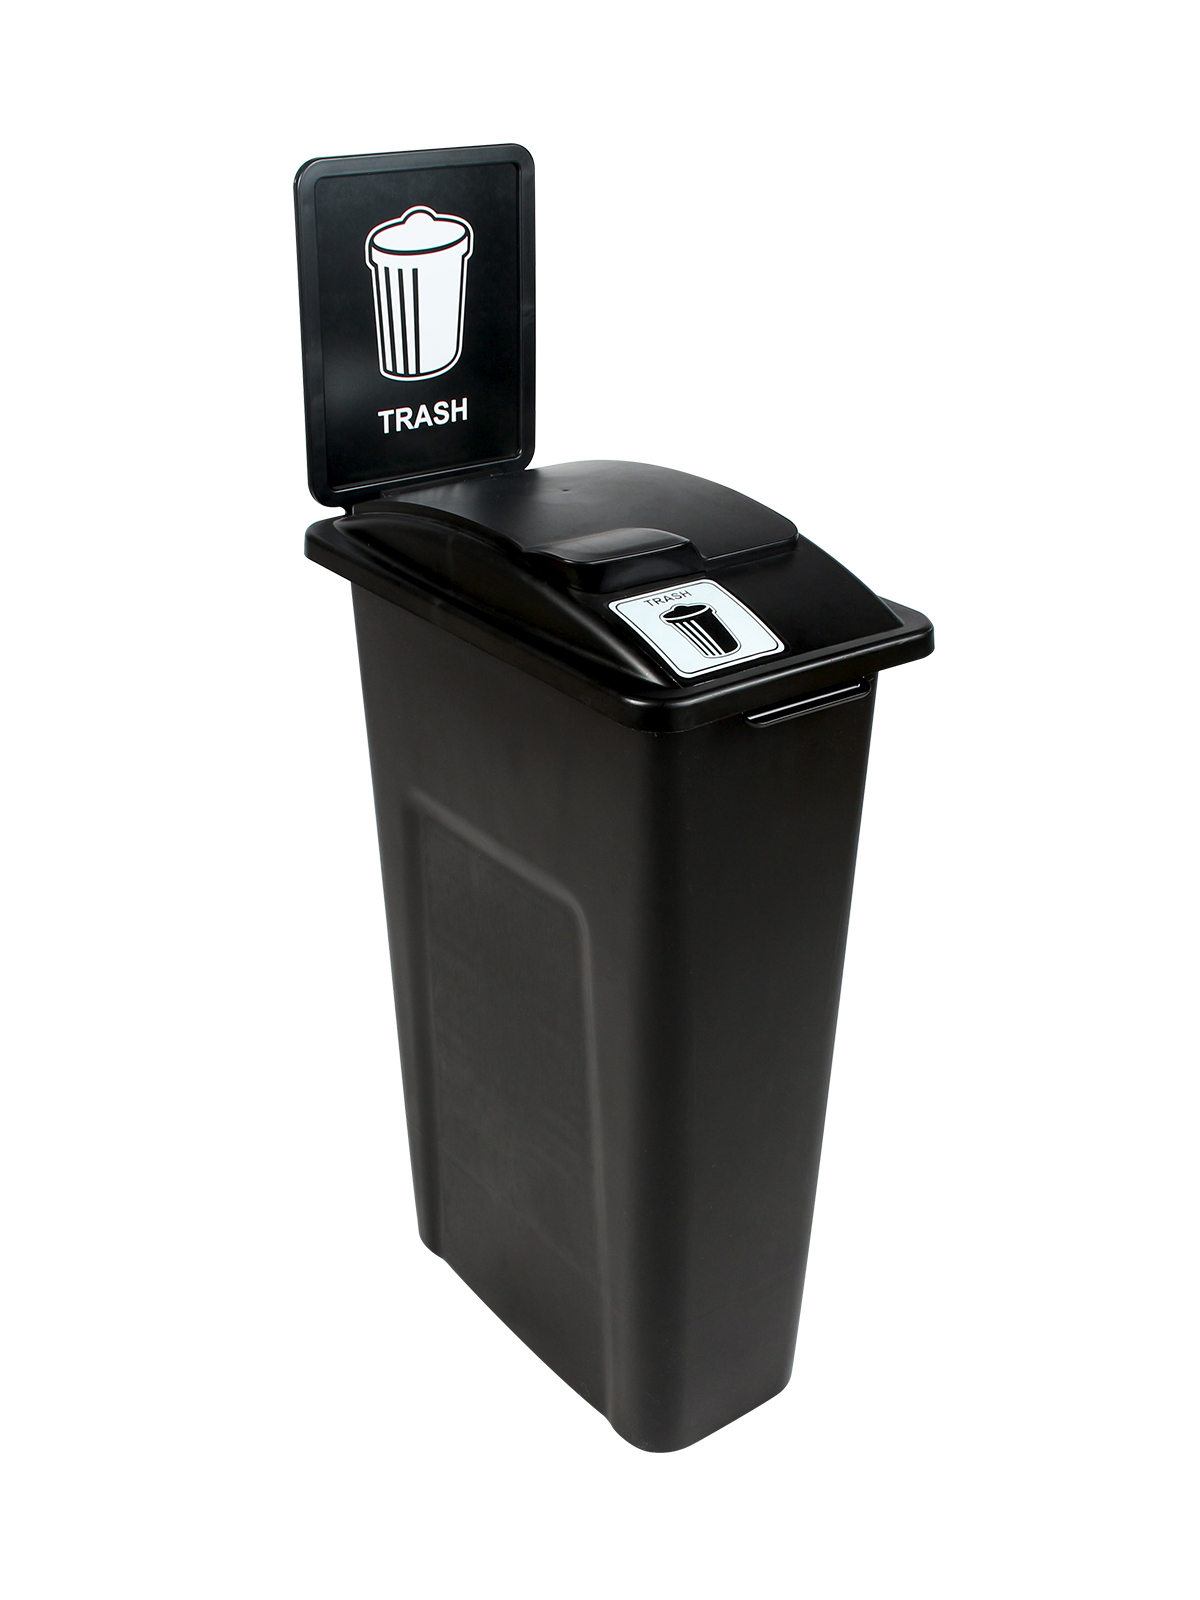 WASTE WATCHER - Single - Trash - Solid Lift - Black